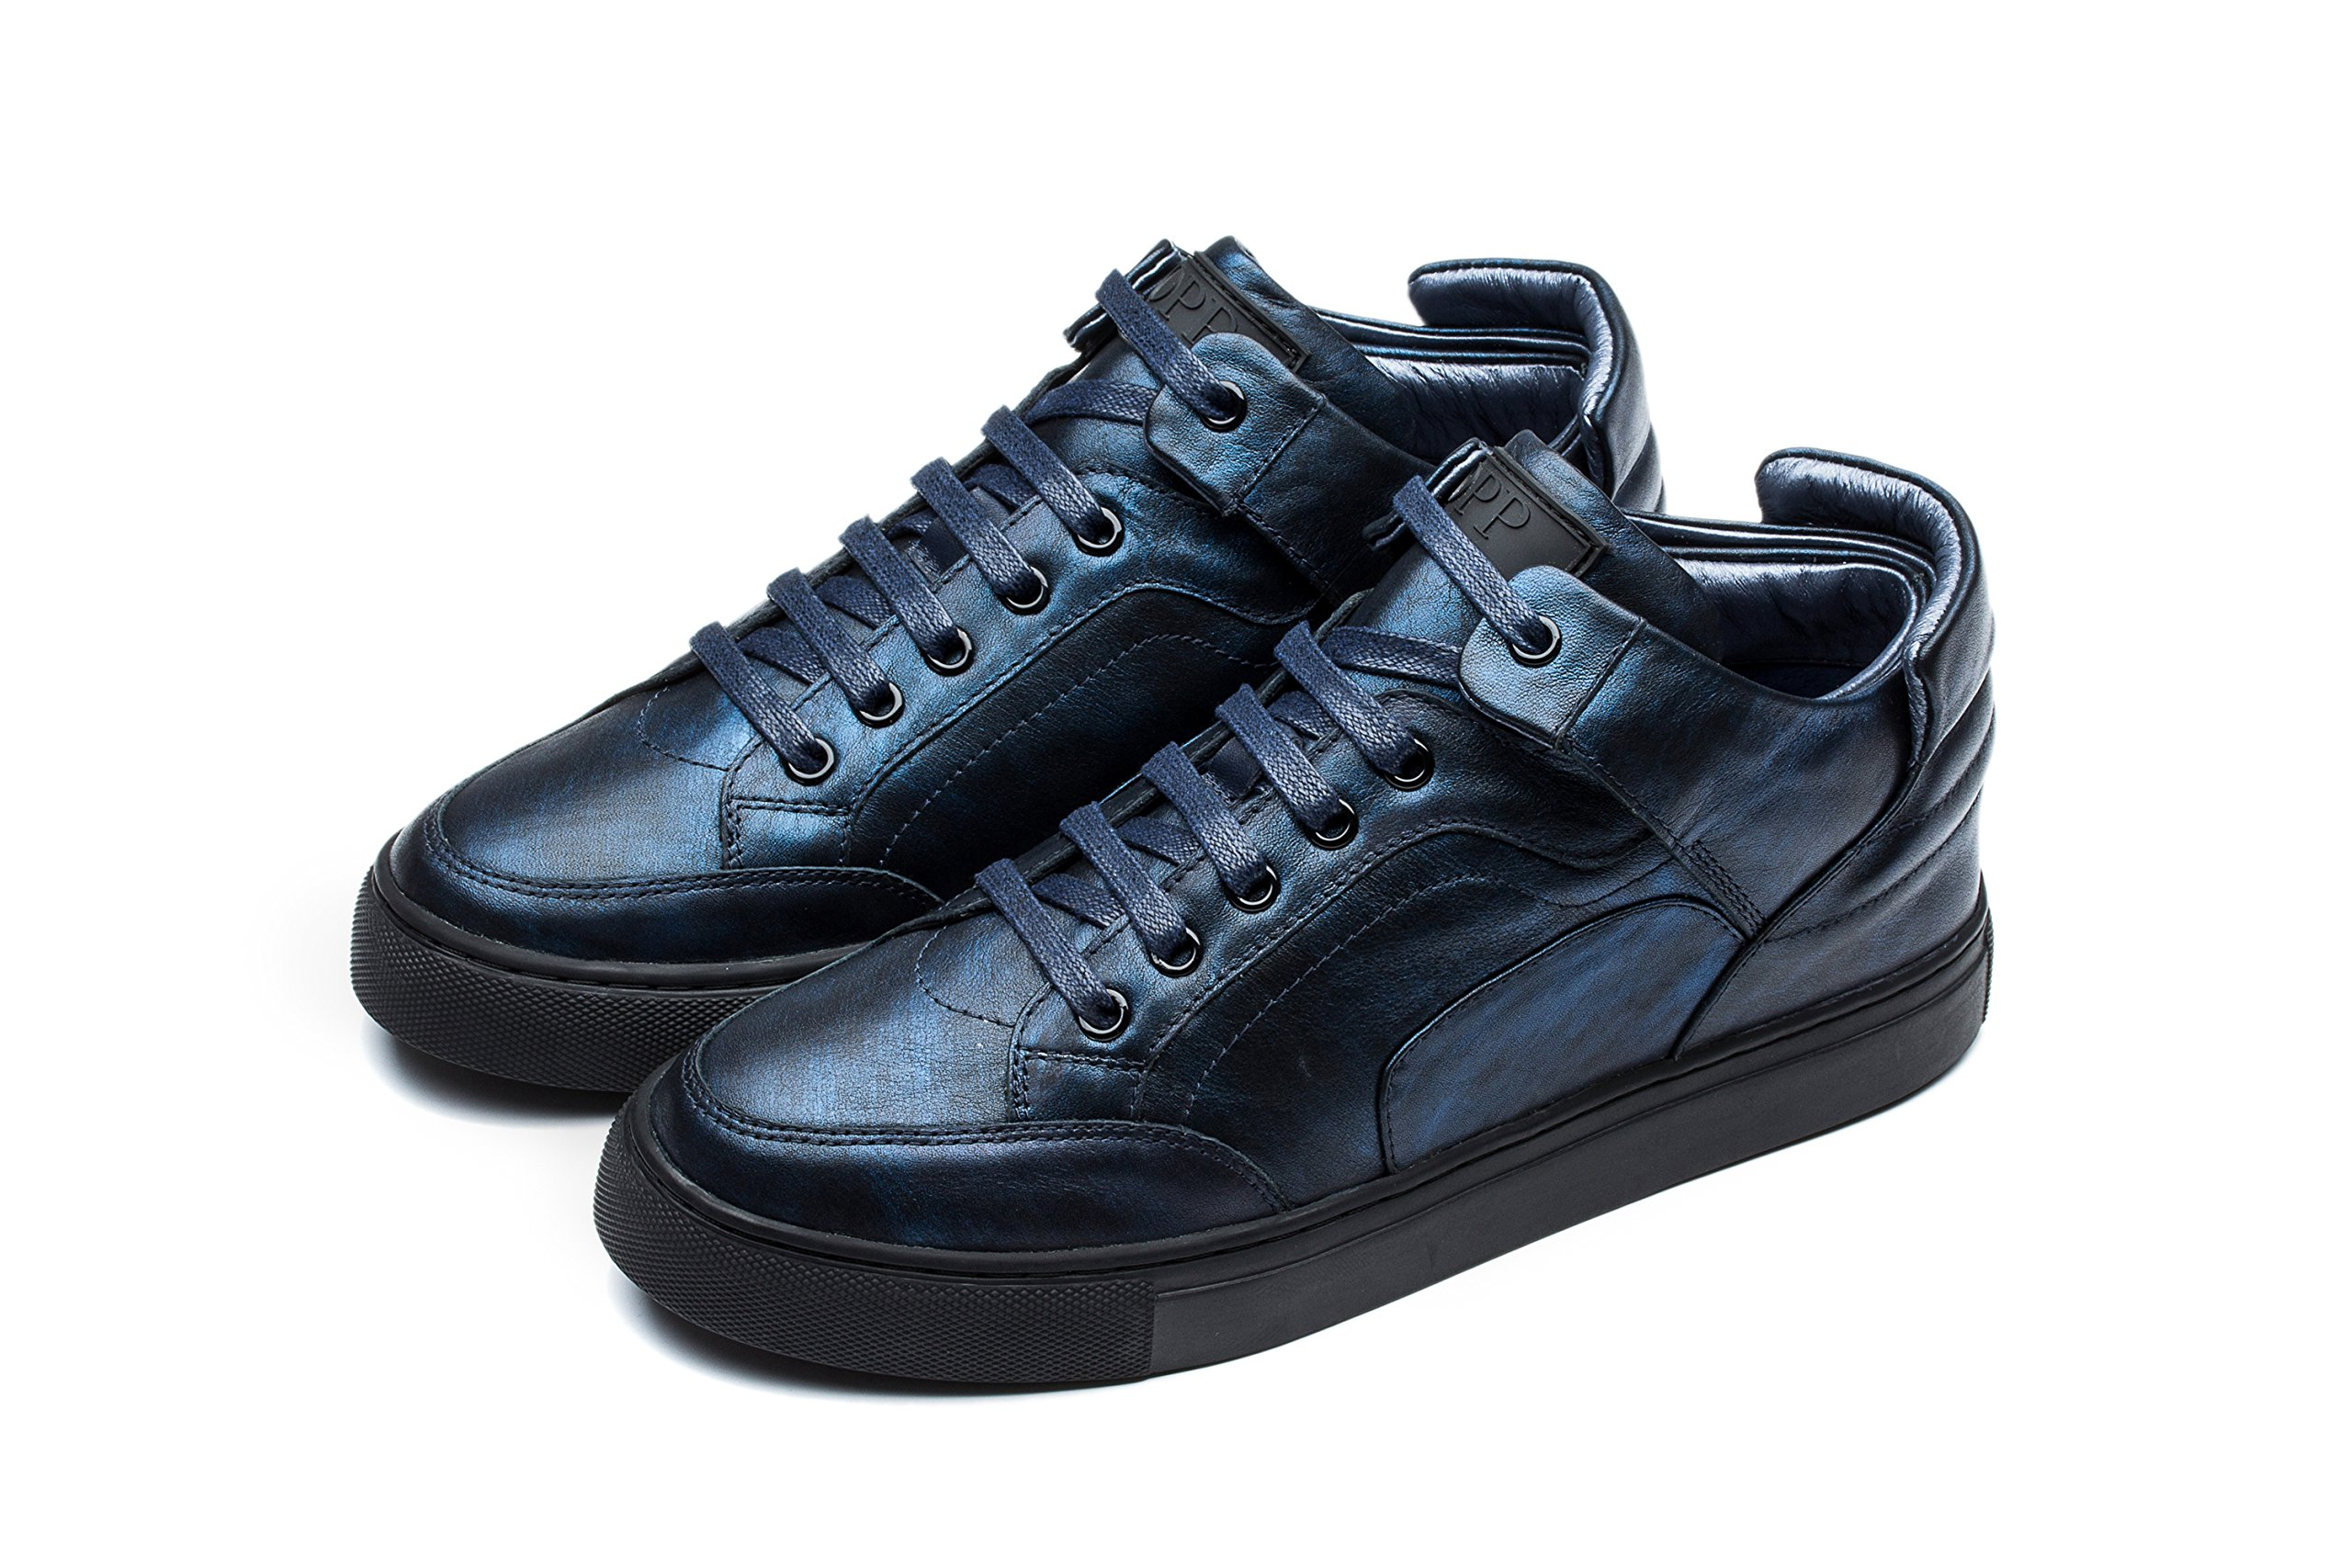 OPP Men's Casual shoes Genuine Leather High-Top 11.5 Blue